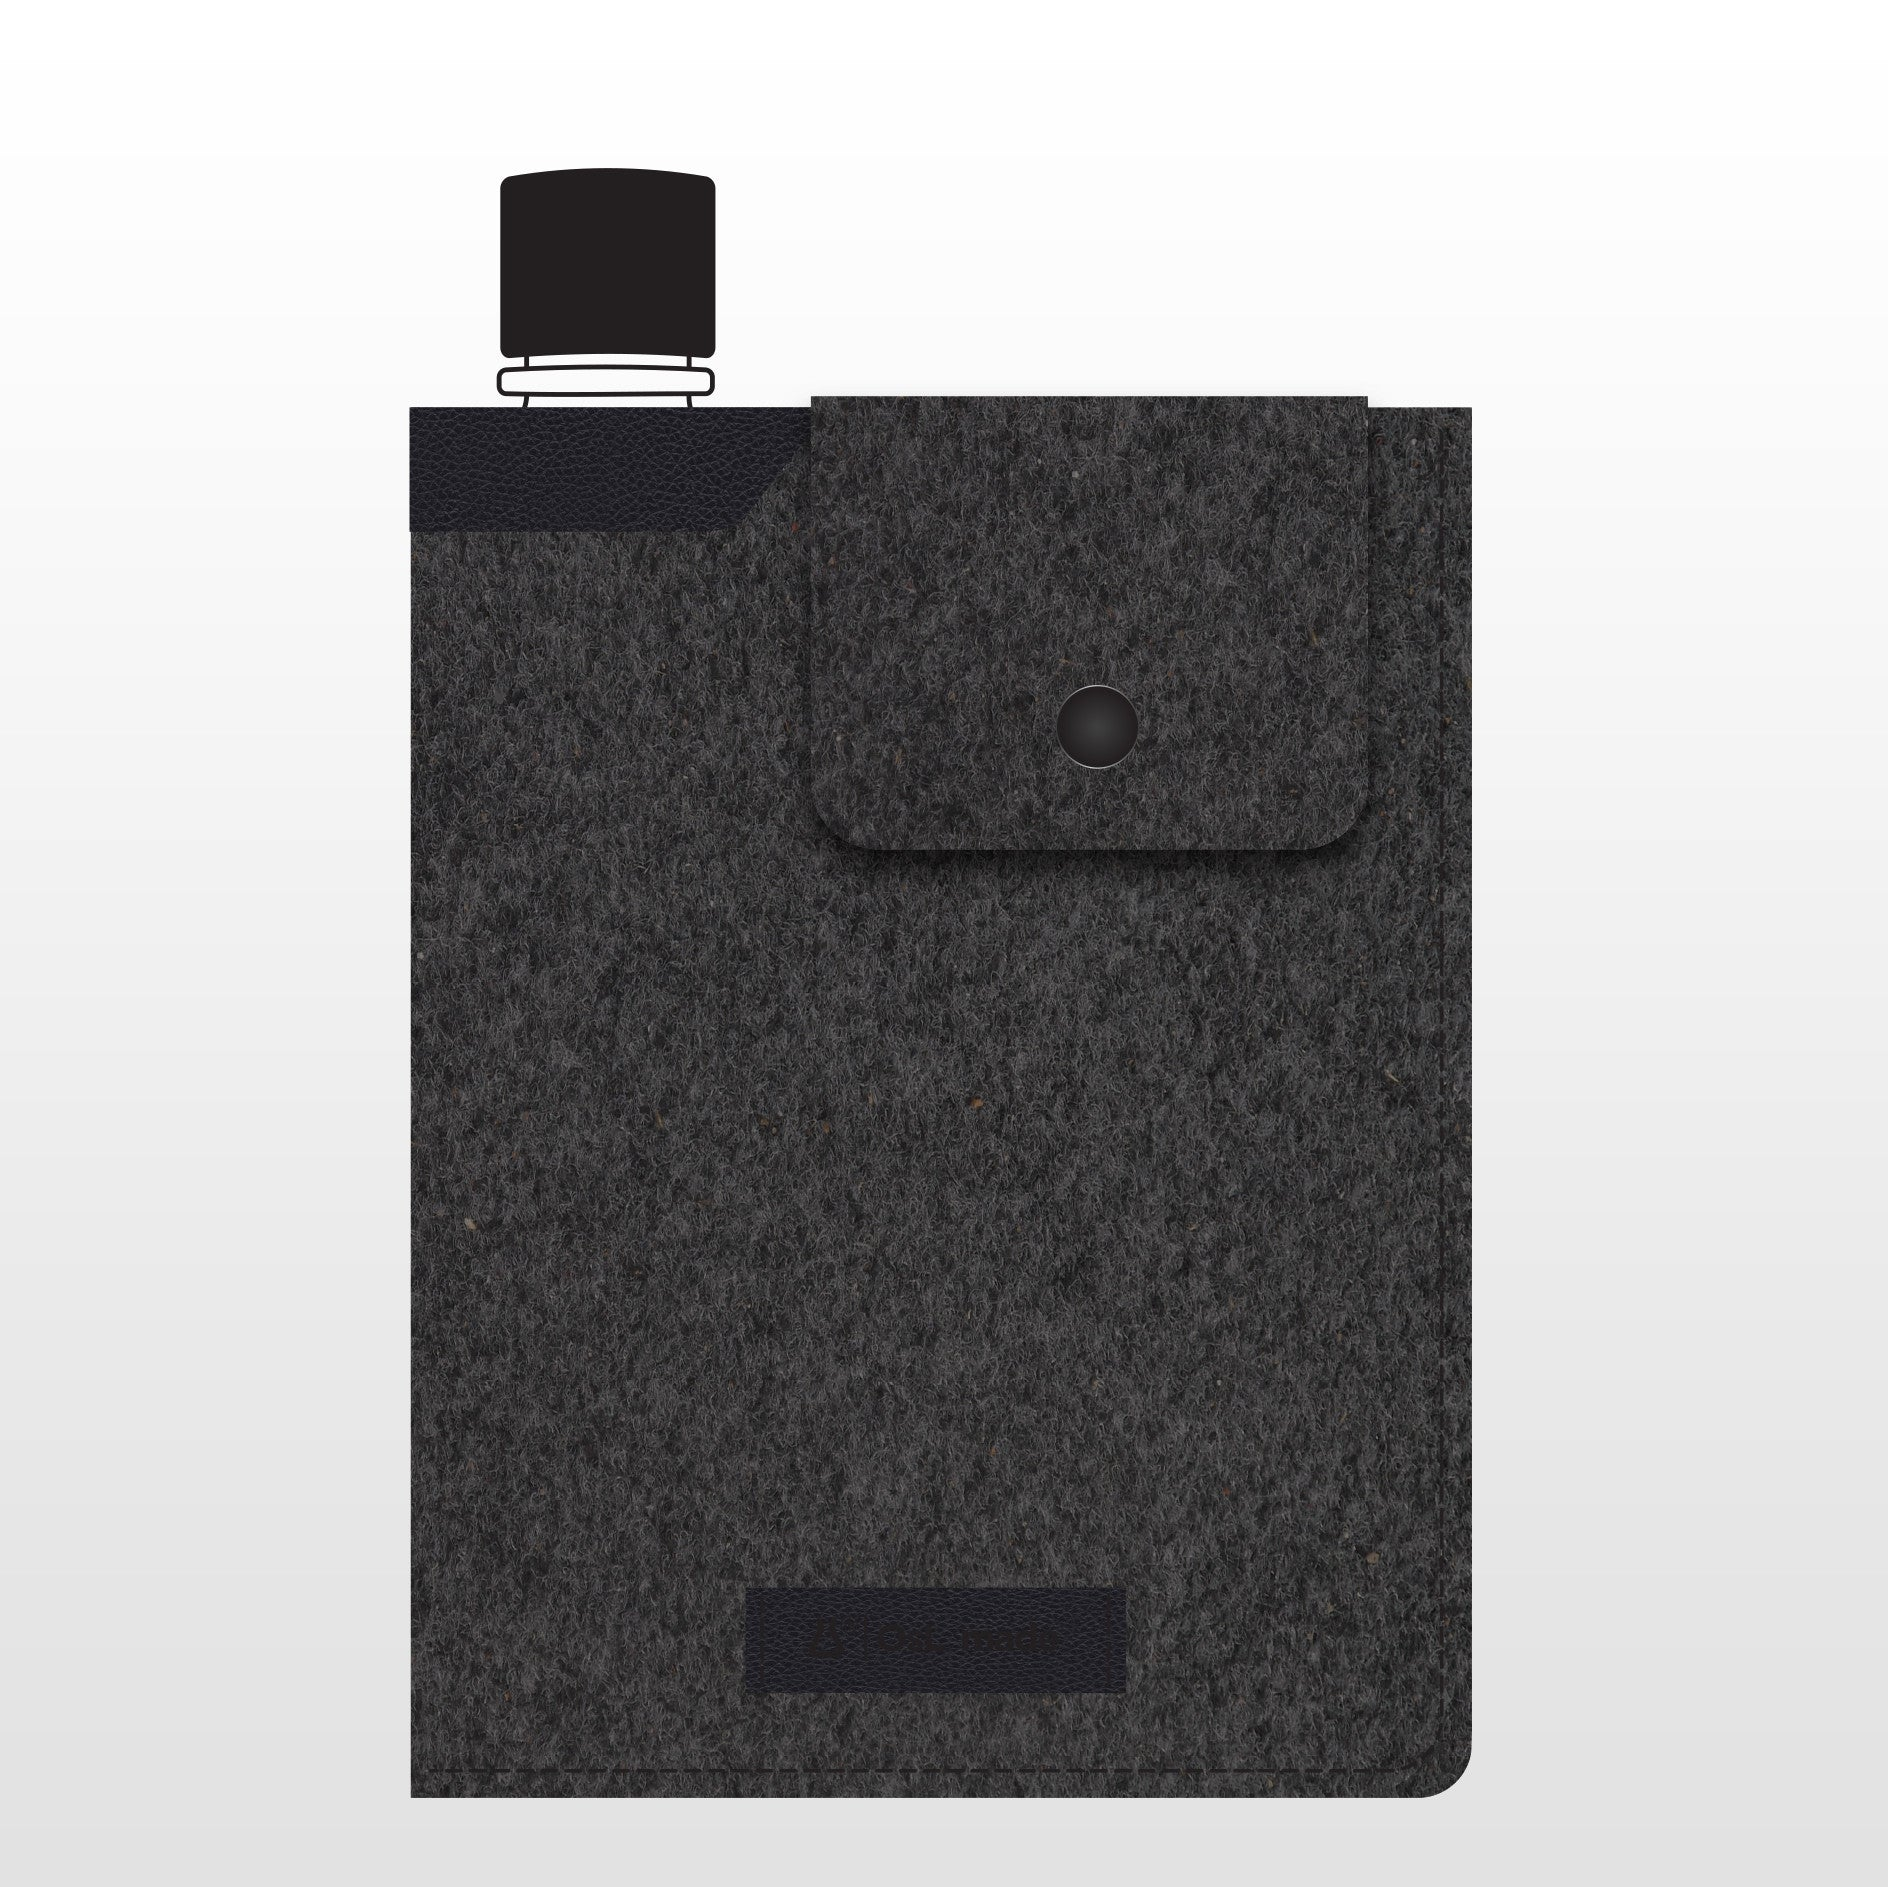 OsL_made | memobottle + Felt/Leather Case